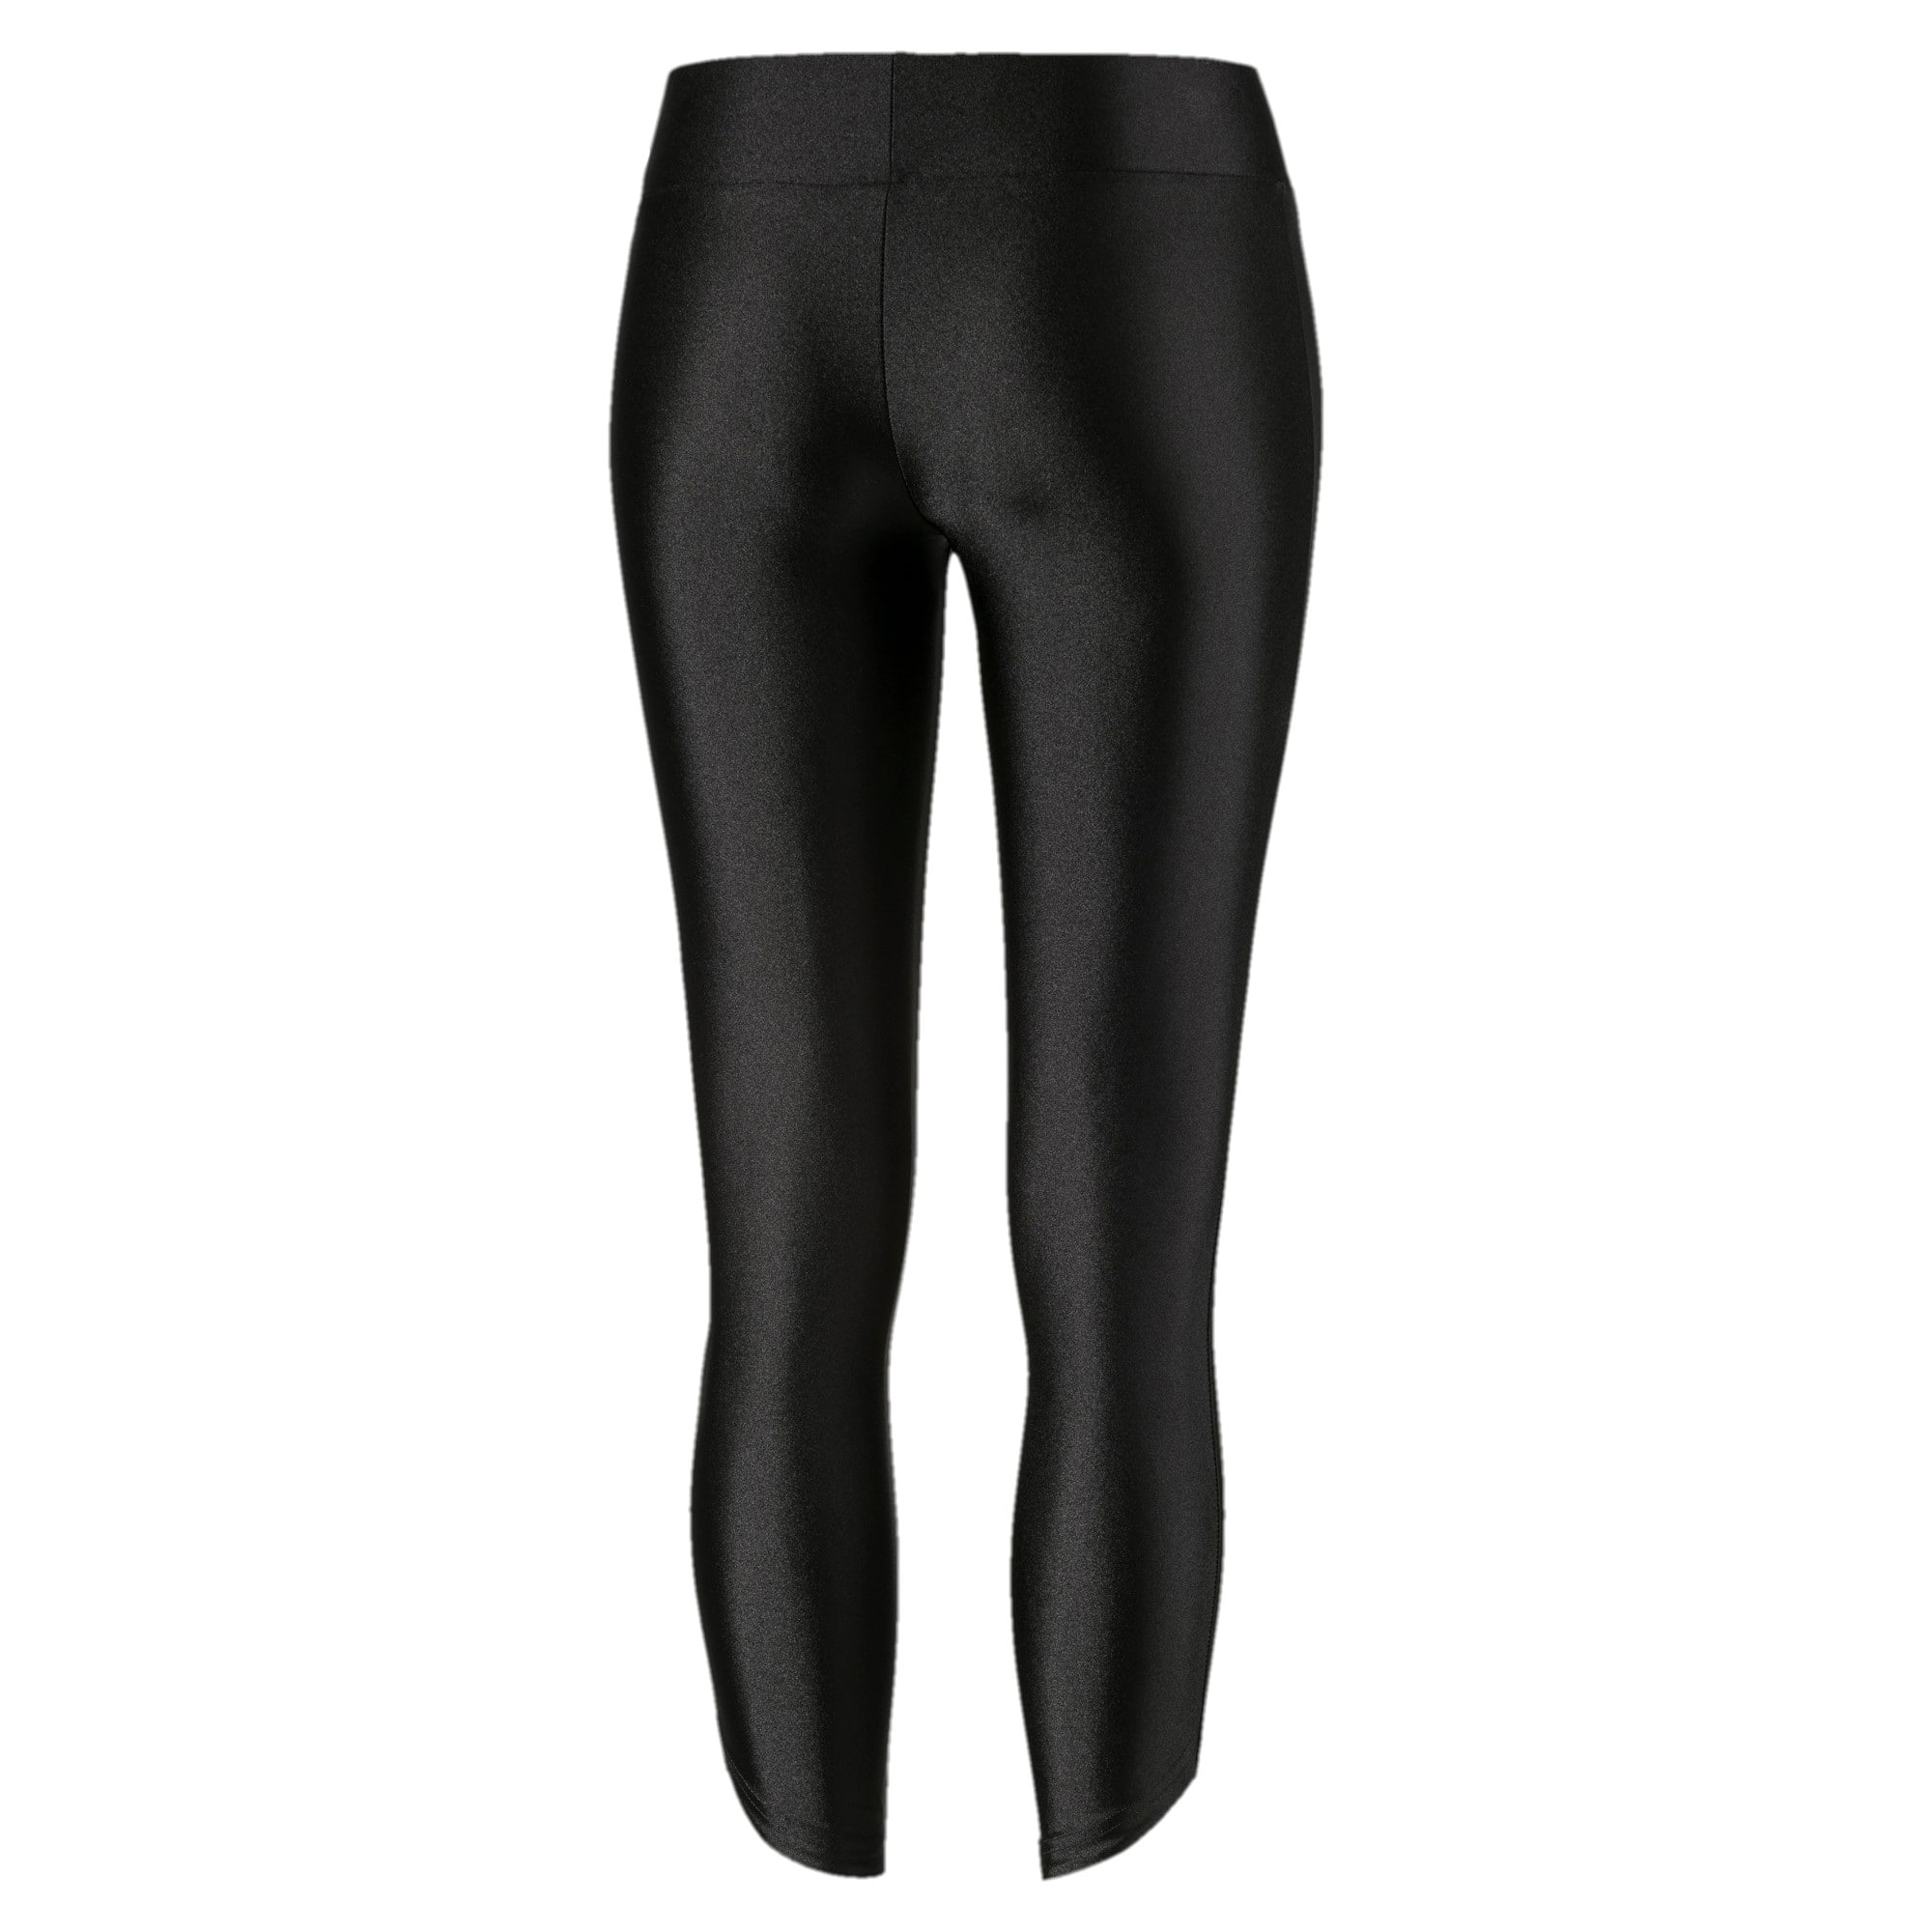 Thumbnail 5 of Chase Graphic 7/8 Women's Leggings, Puma Black, medium